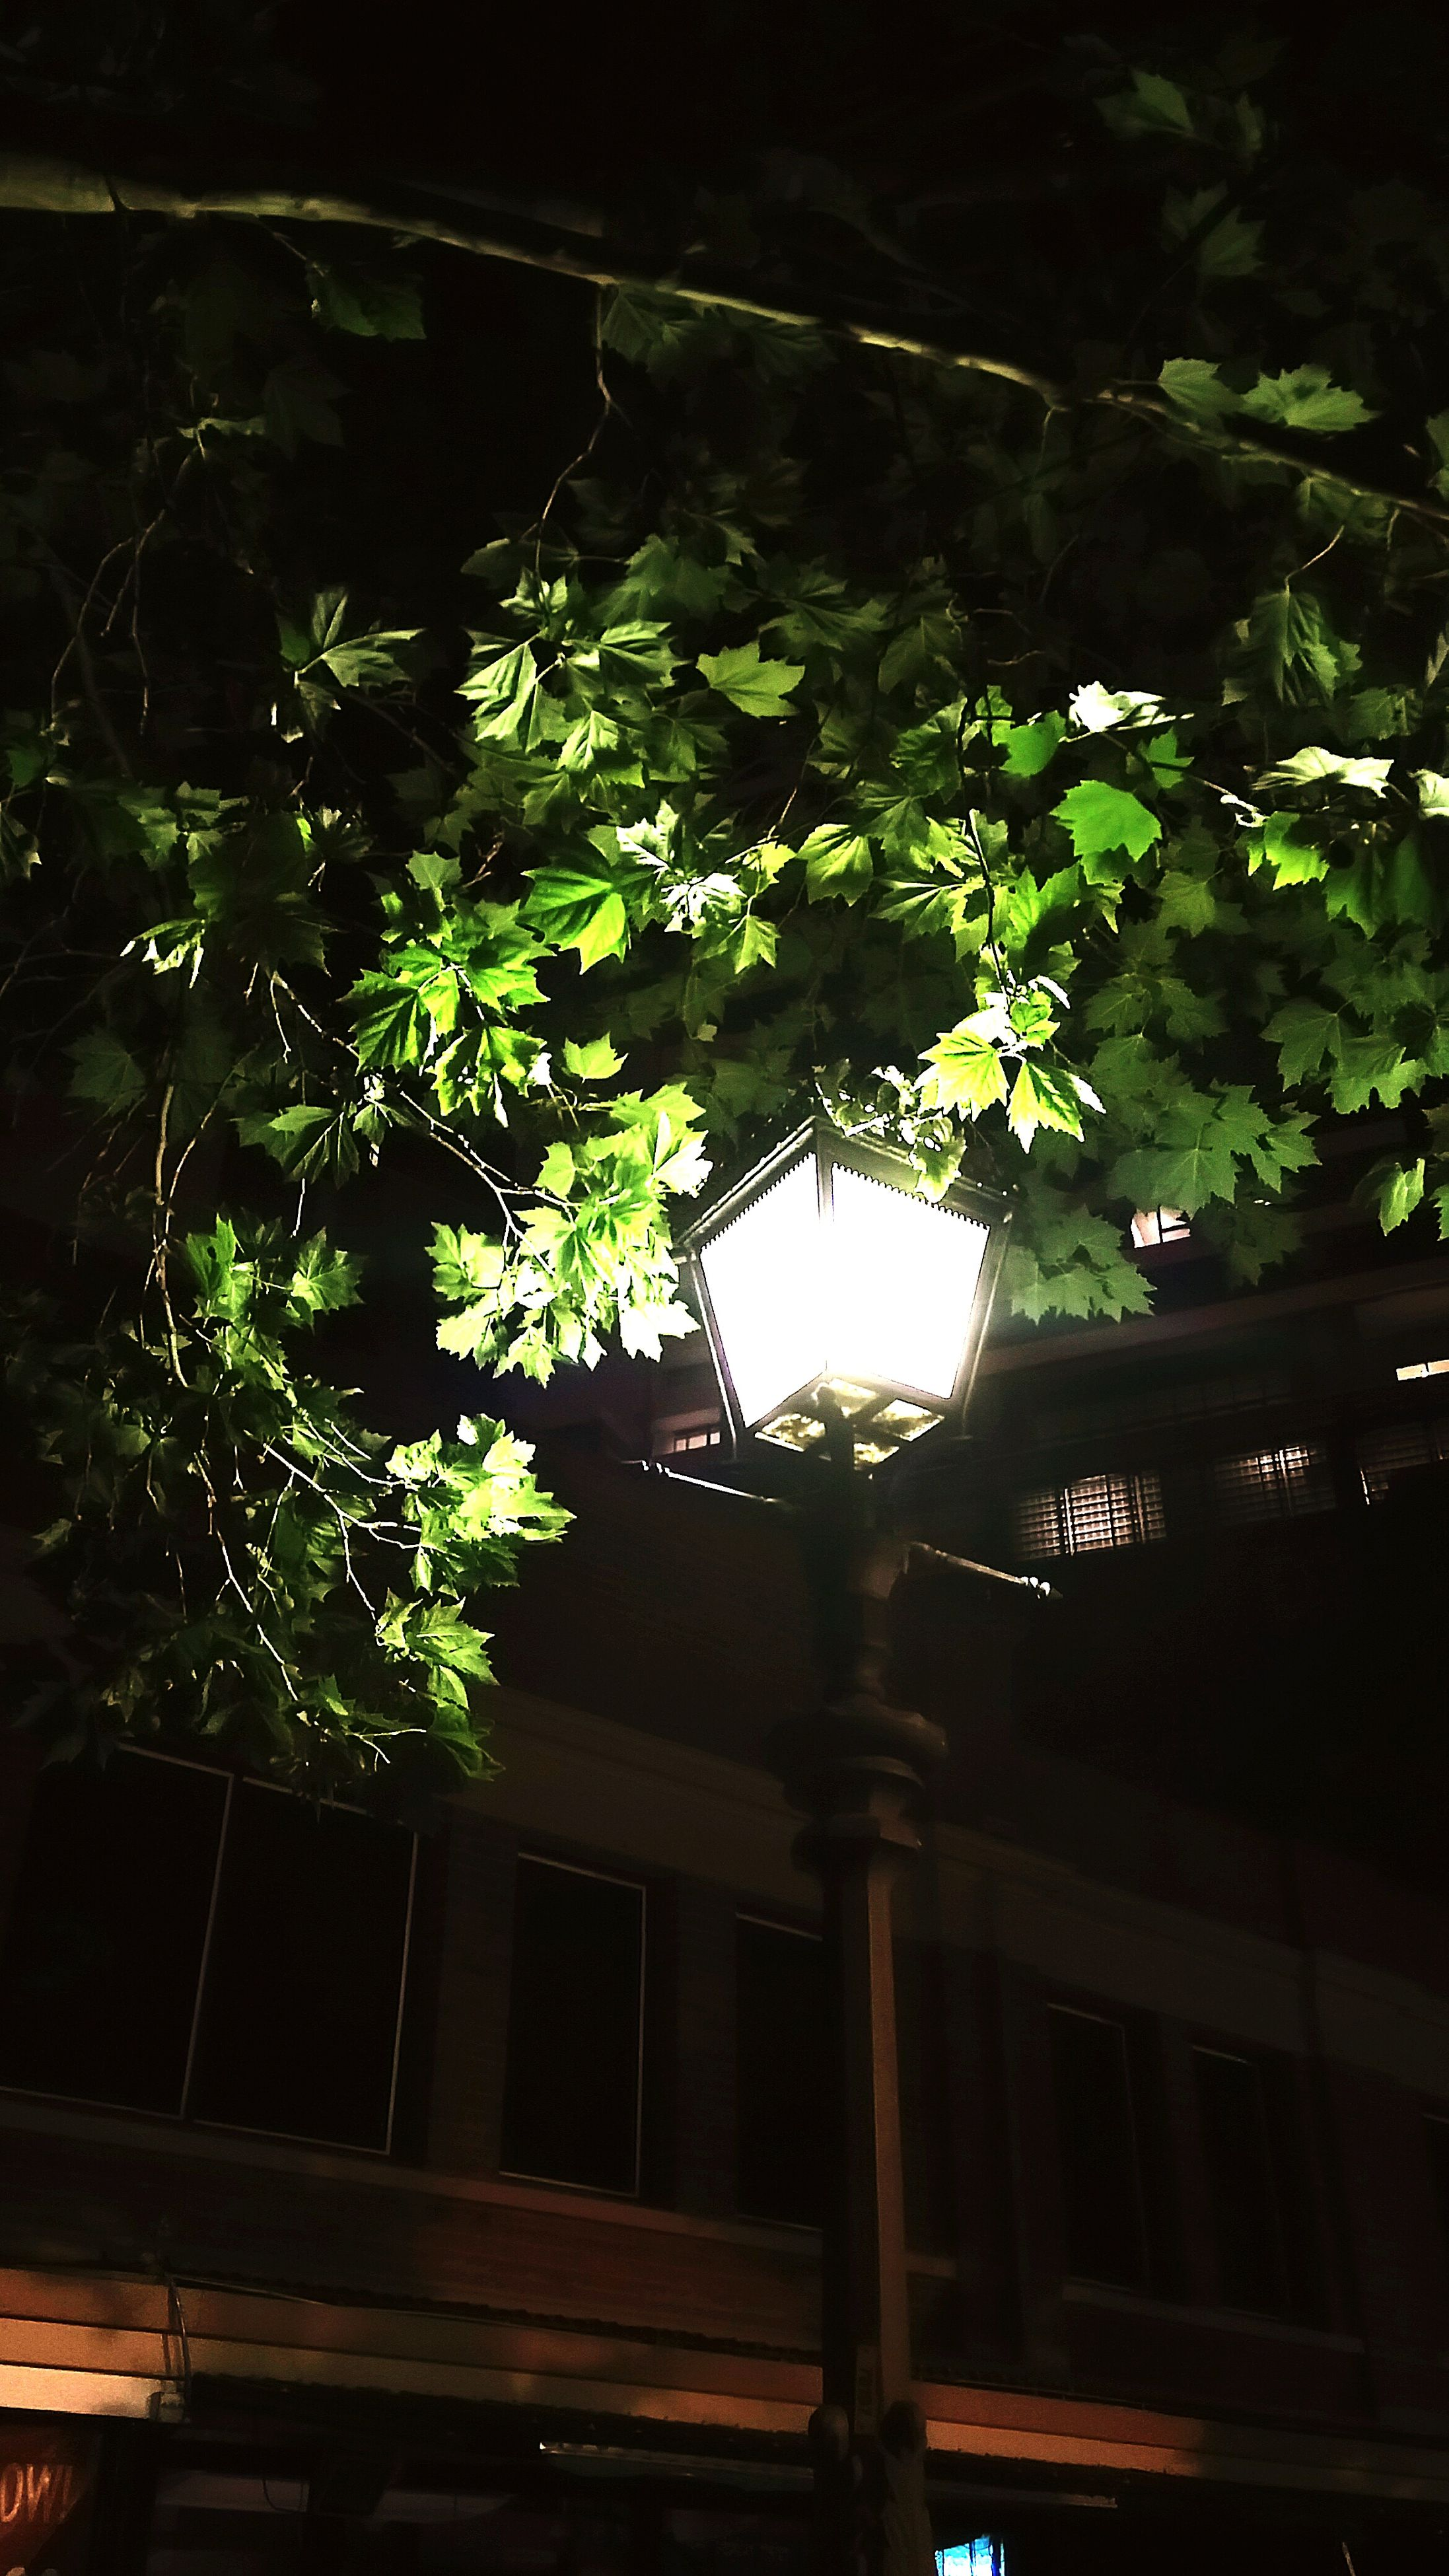 night, tree, built structure, growth, architecture, building exterior, illuminated, house, plant, green color, branch, nature, lighting equipment, low angle view, no people, outdoors, dark, window, street light, residential structure